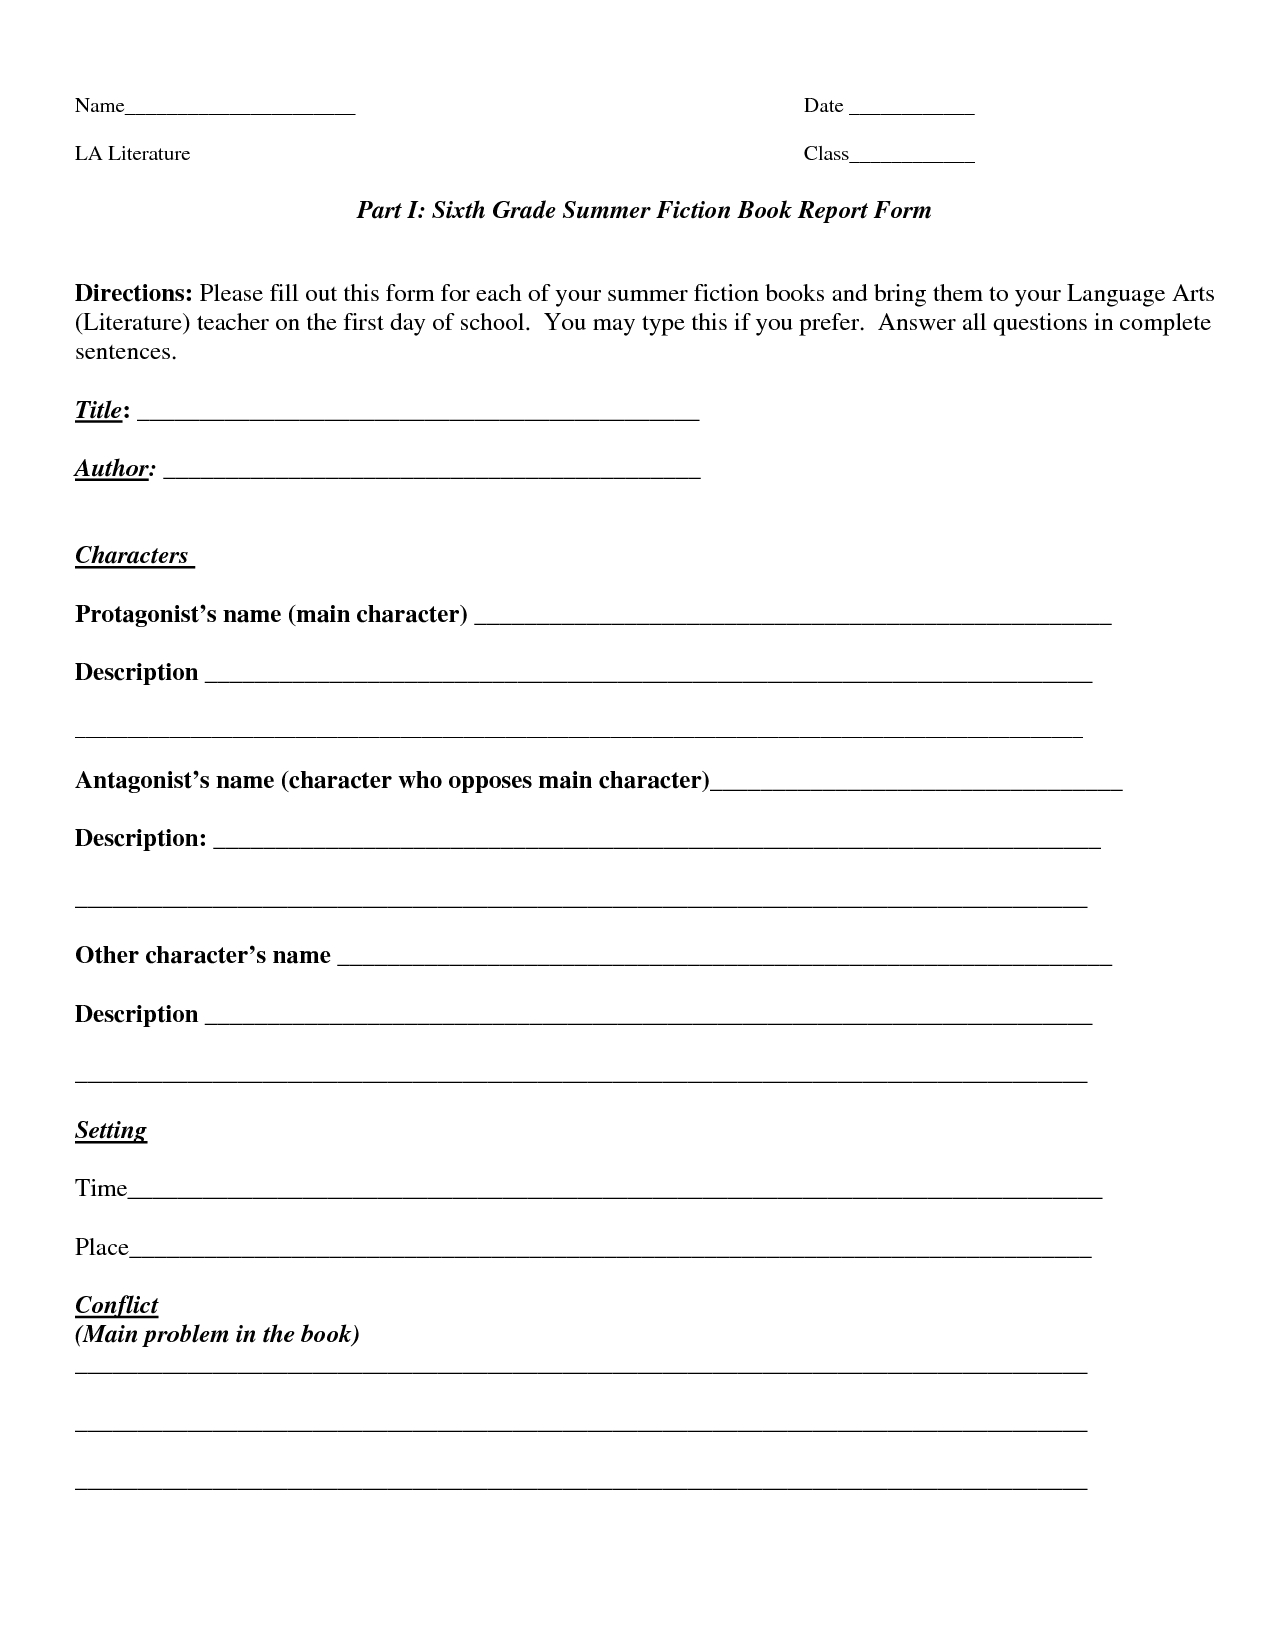 Book Report Template | Part I Sixth Grade Summer Fiction Pertaining To Book Report Template 6Th Grade